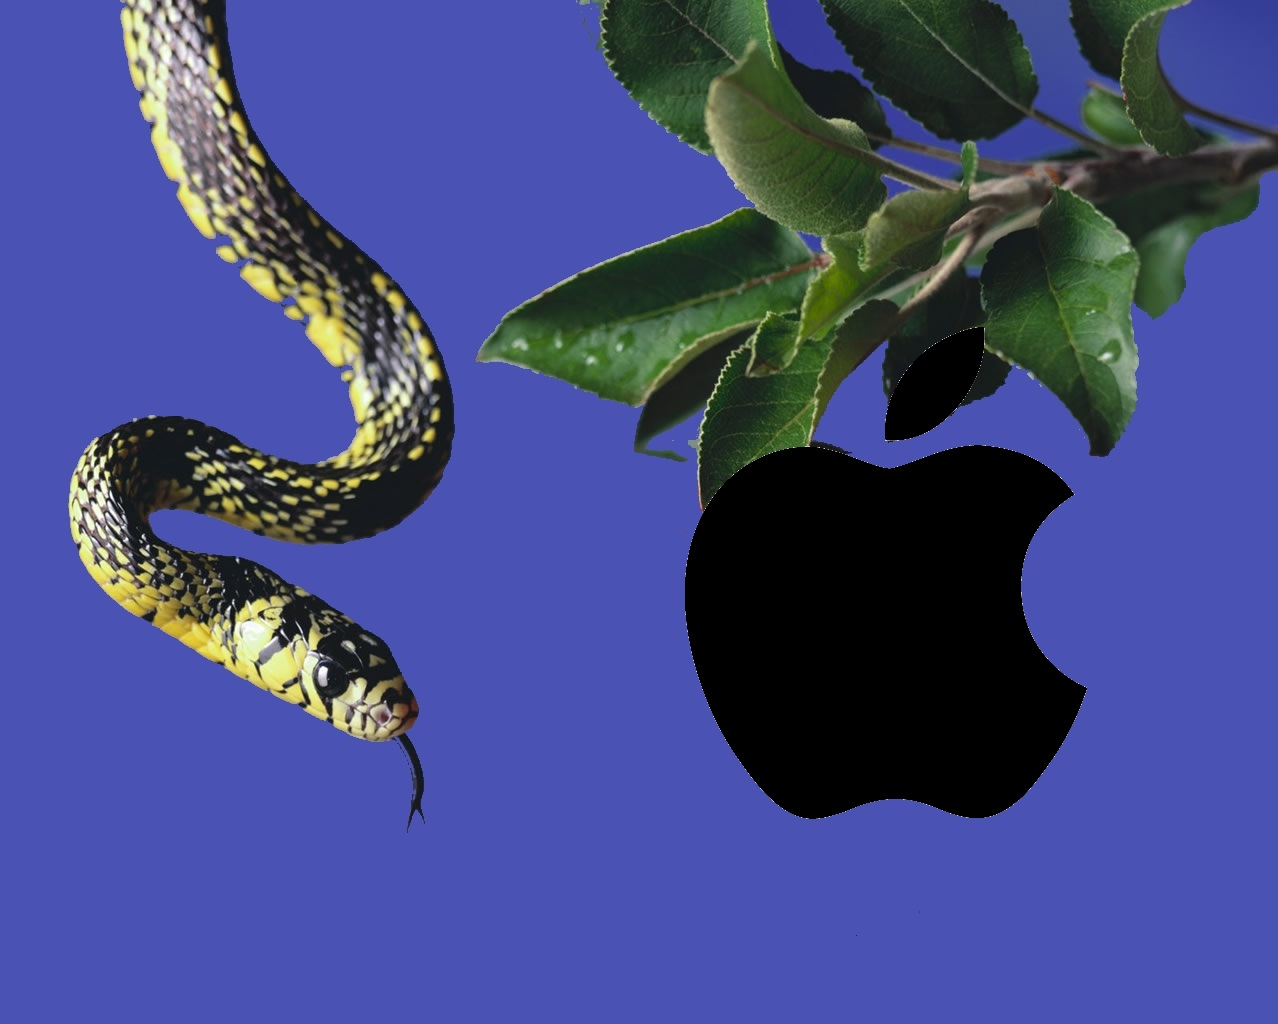 apple-and-snake_1280x1024_2988.jpg